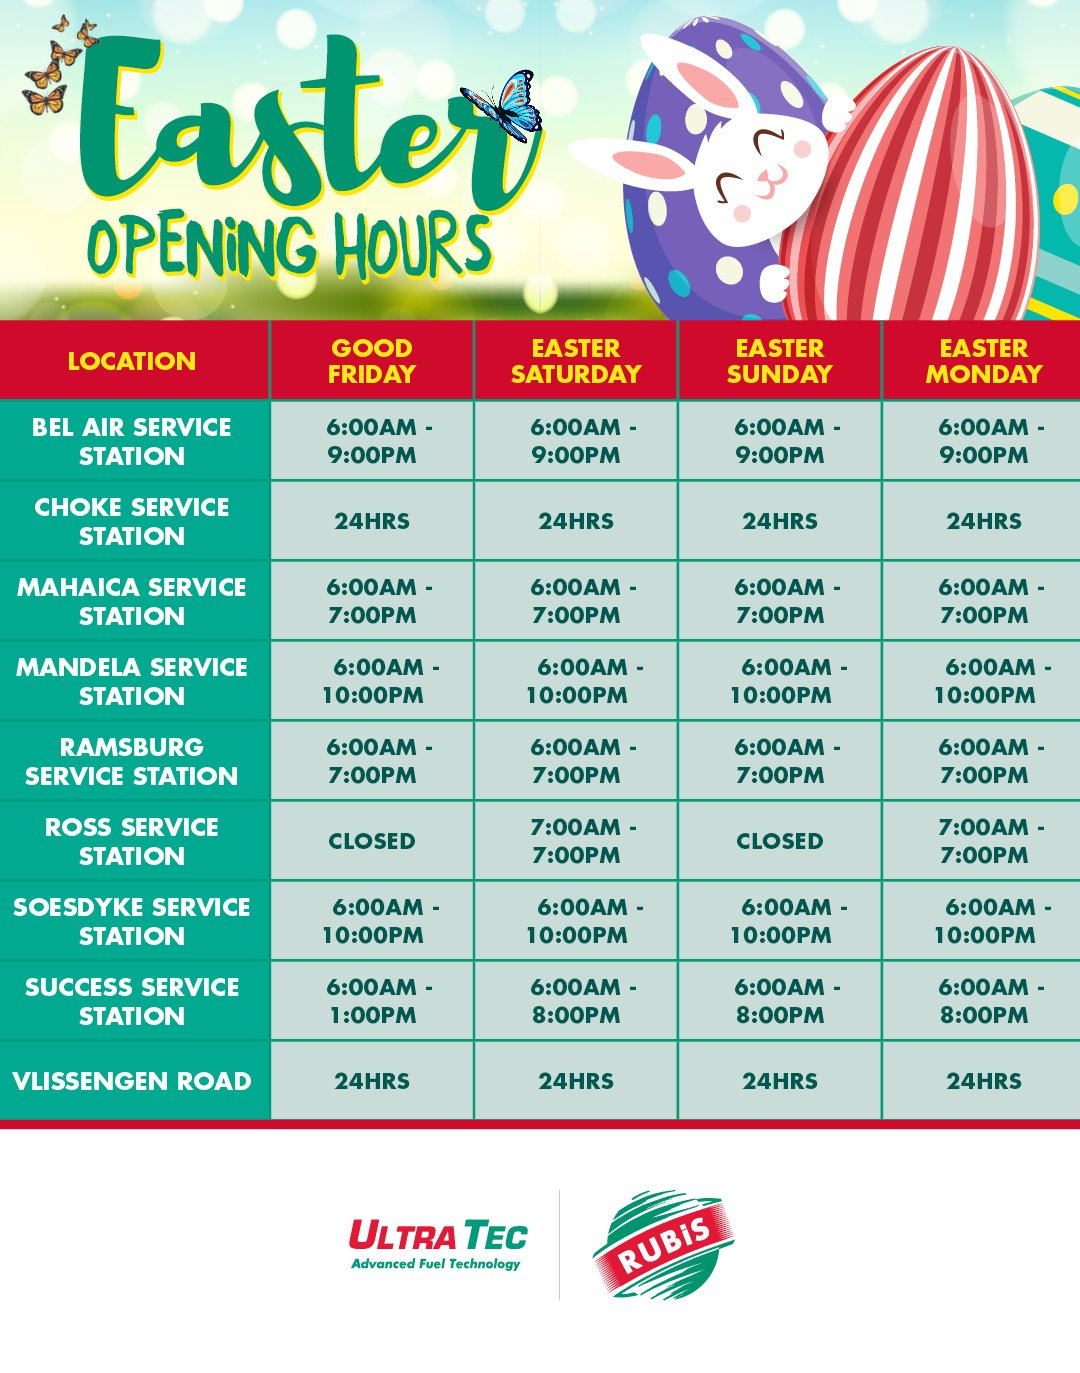 Rubis Easter hours